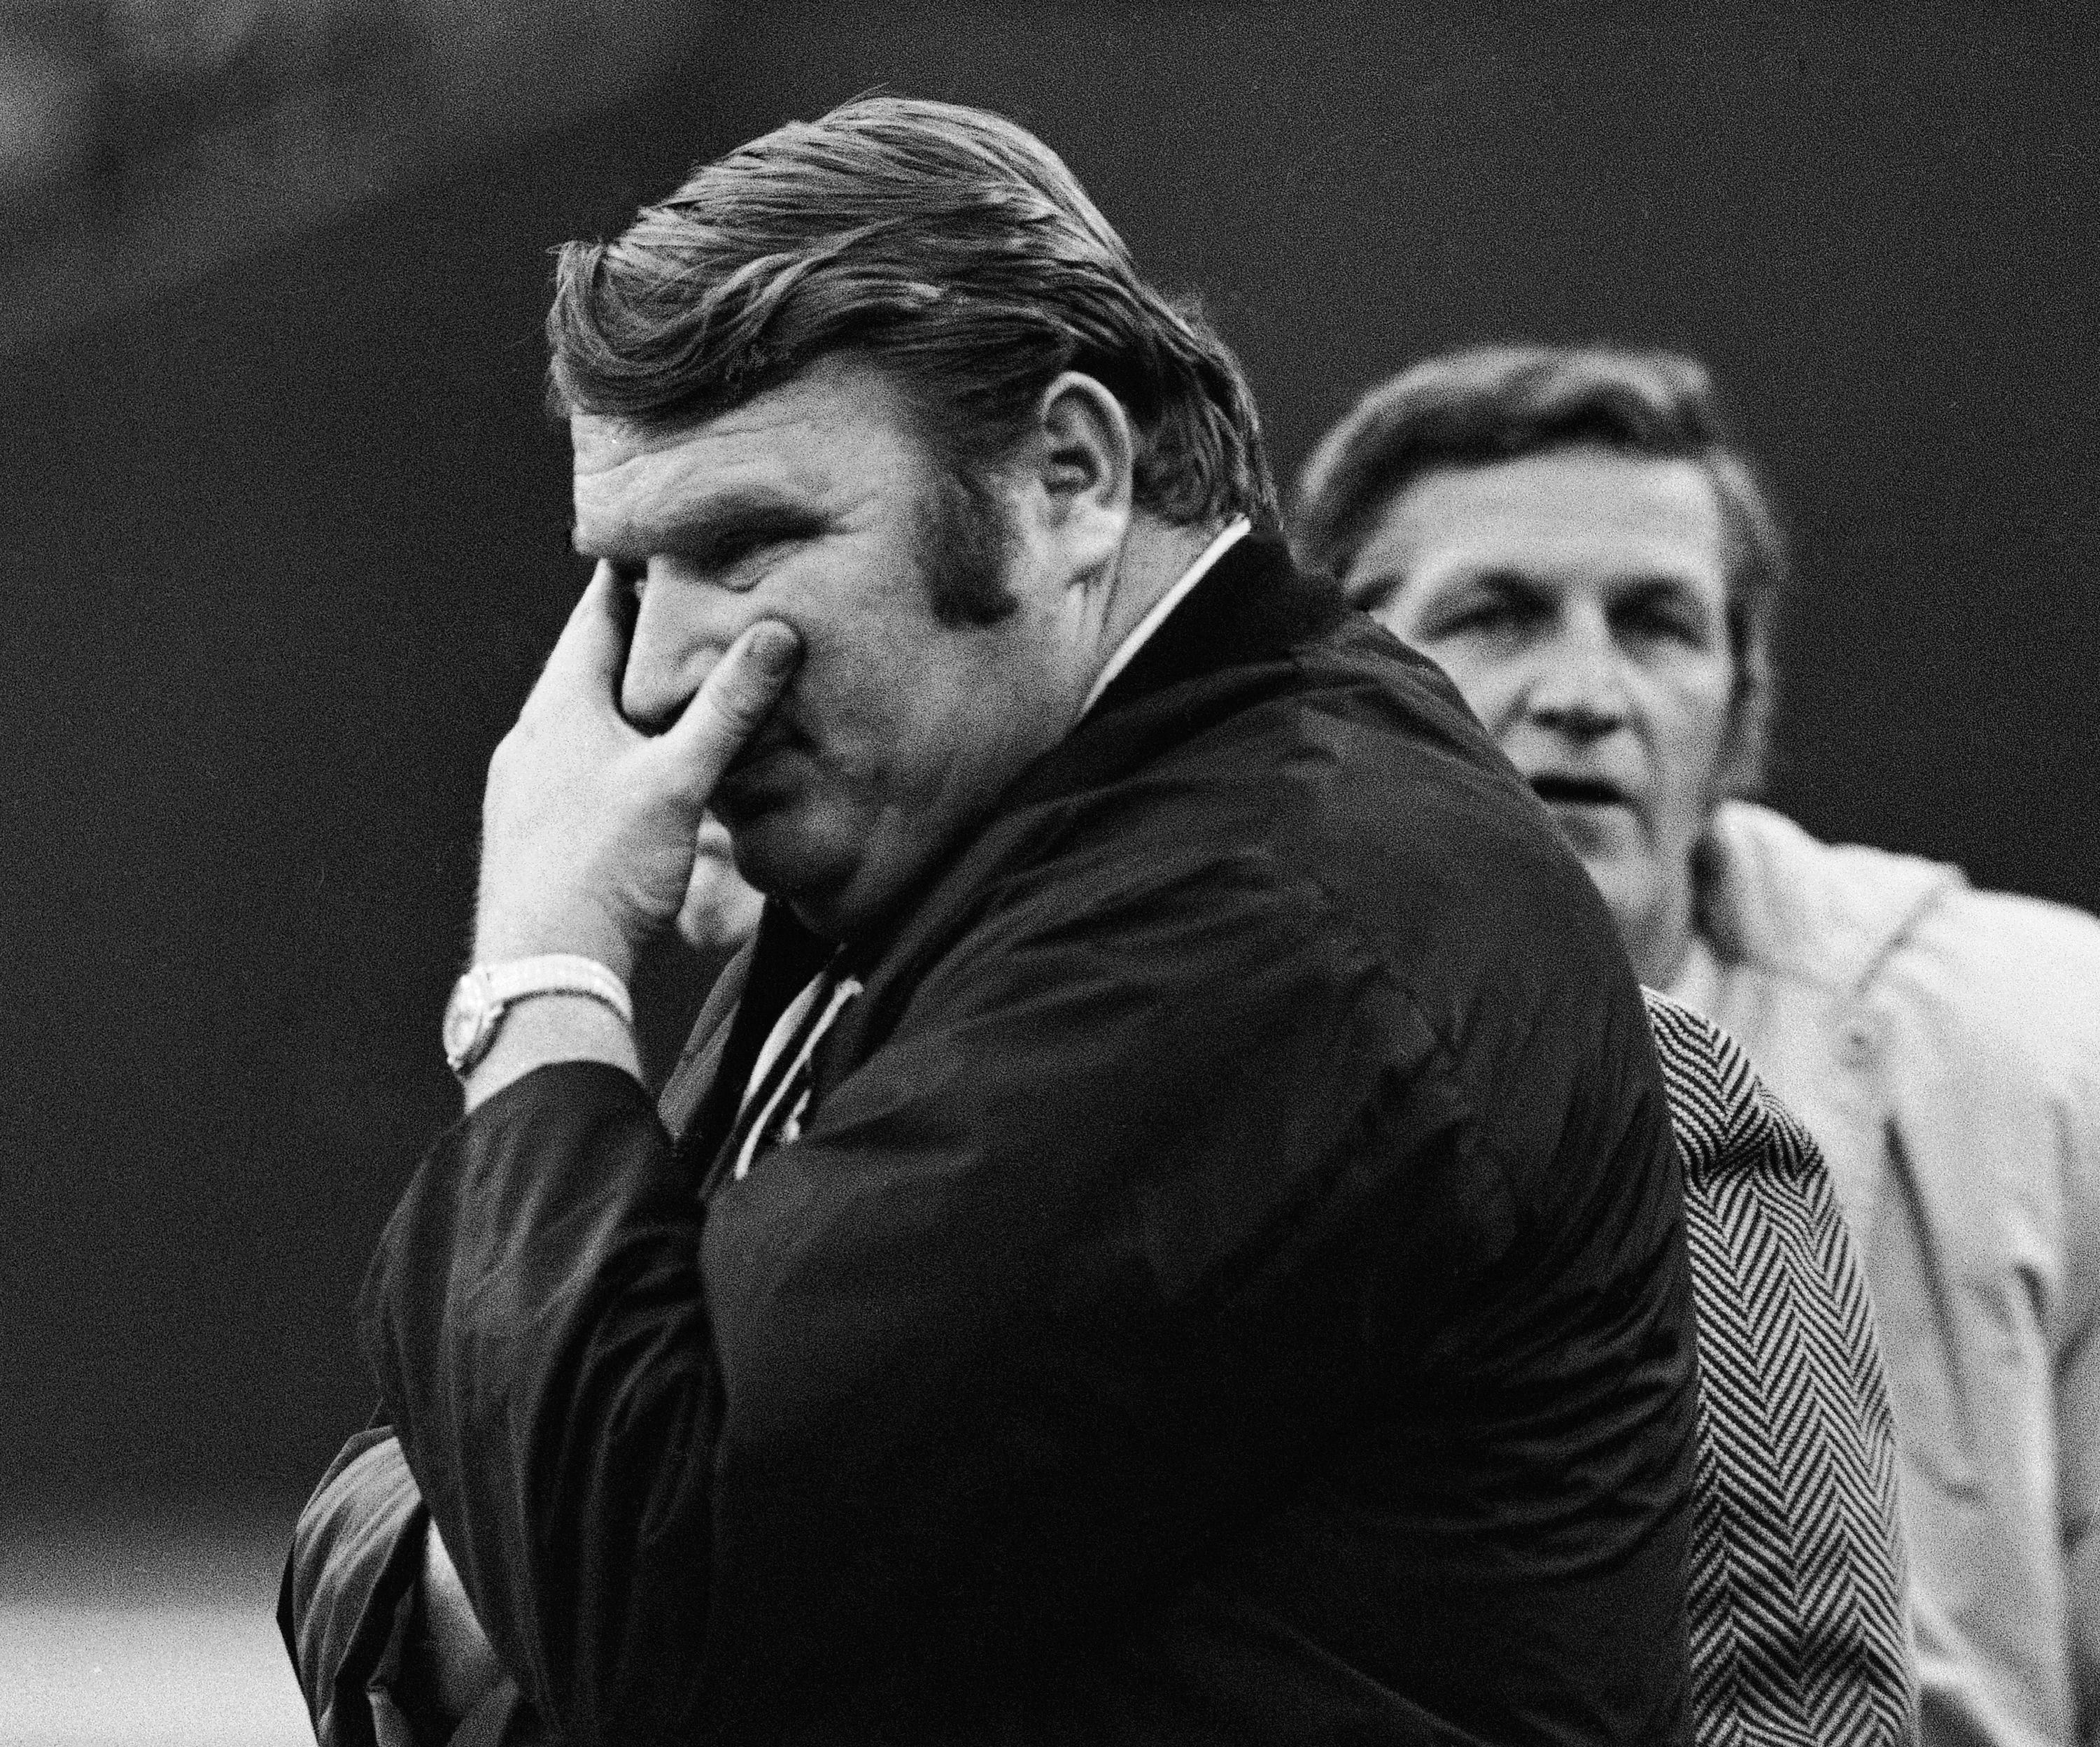 John Madden refuses to answers questions about the Immaculate Reception. (AP)